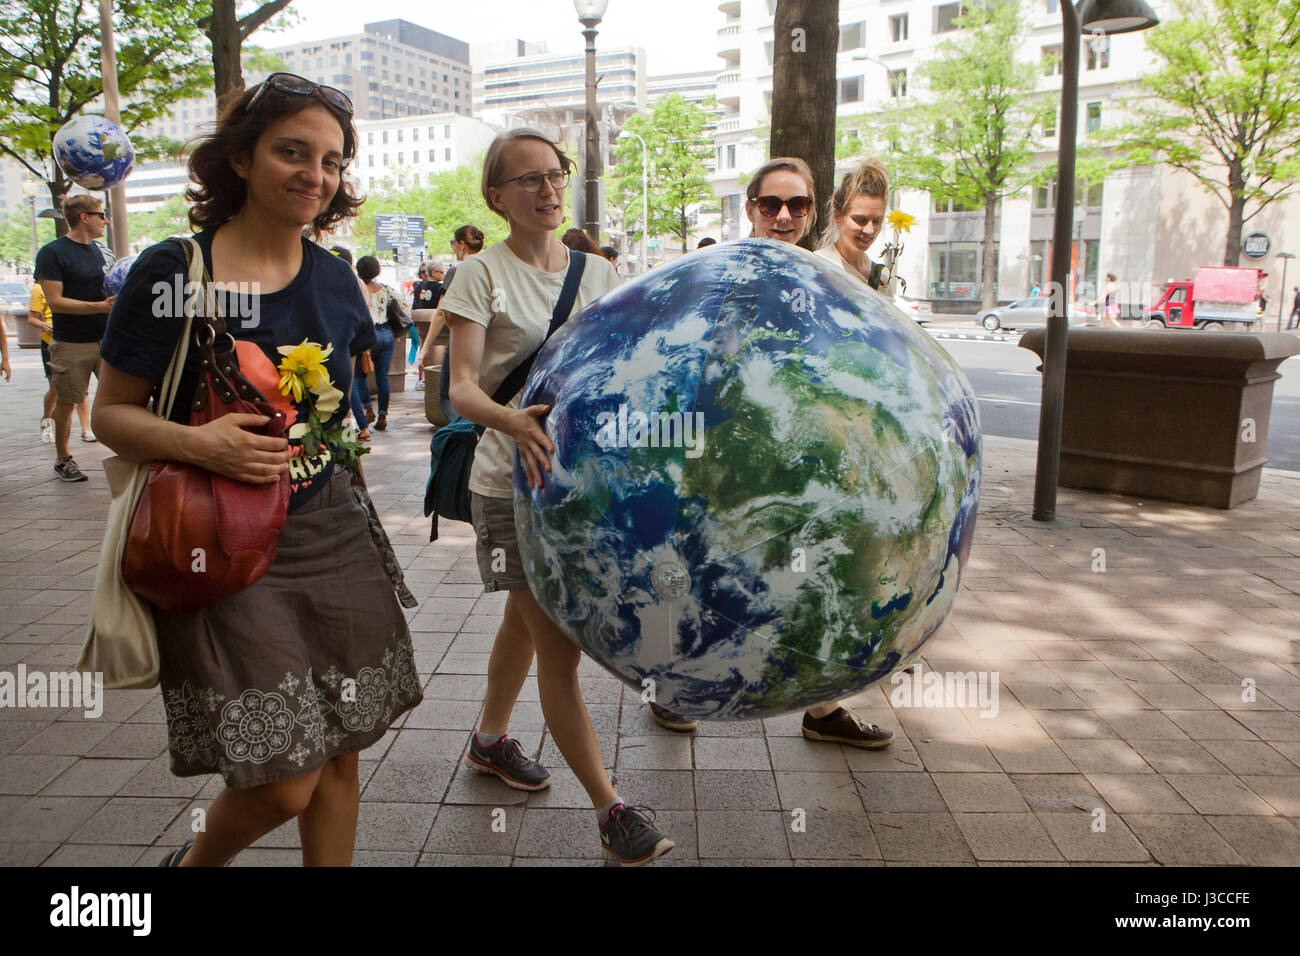 2017 People's Climate March (woman holding an blue earth balloon) - Washington, DC USA - Stock Image